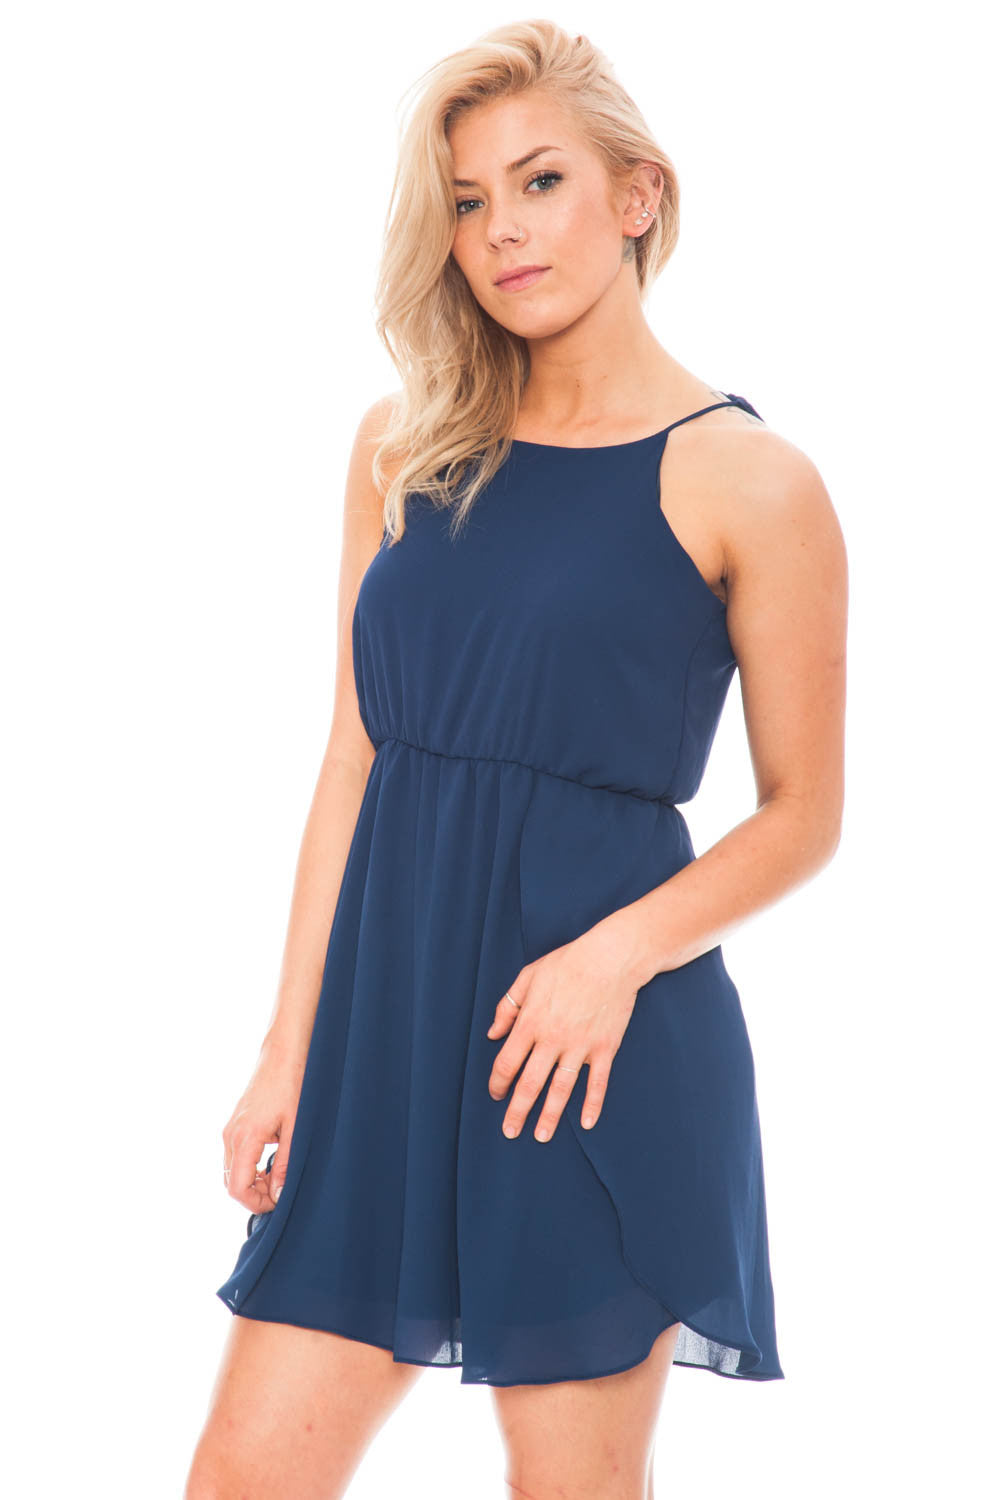 Dress - Chiffon Dress with Adjustable Neckline by Everly